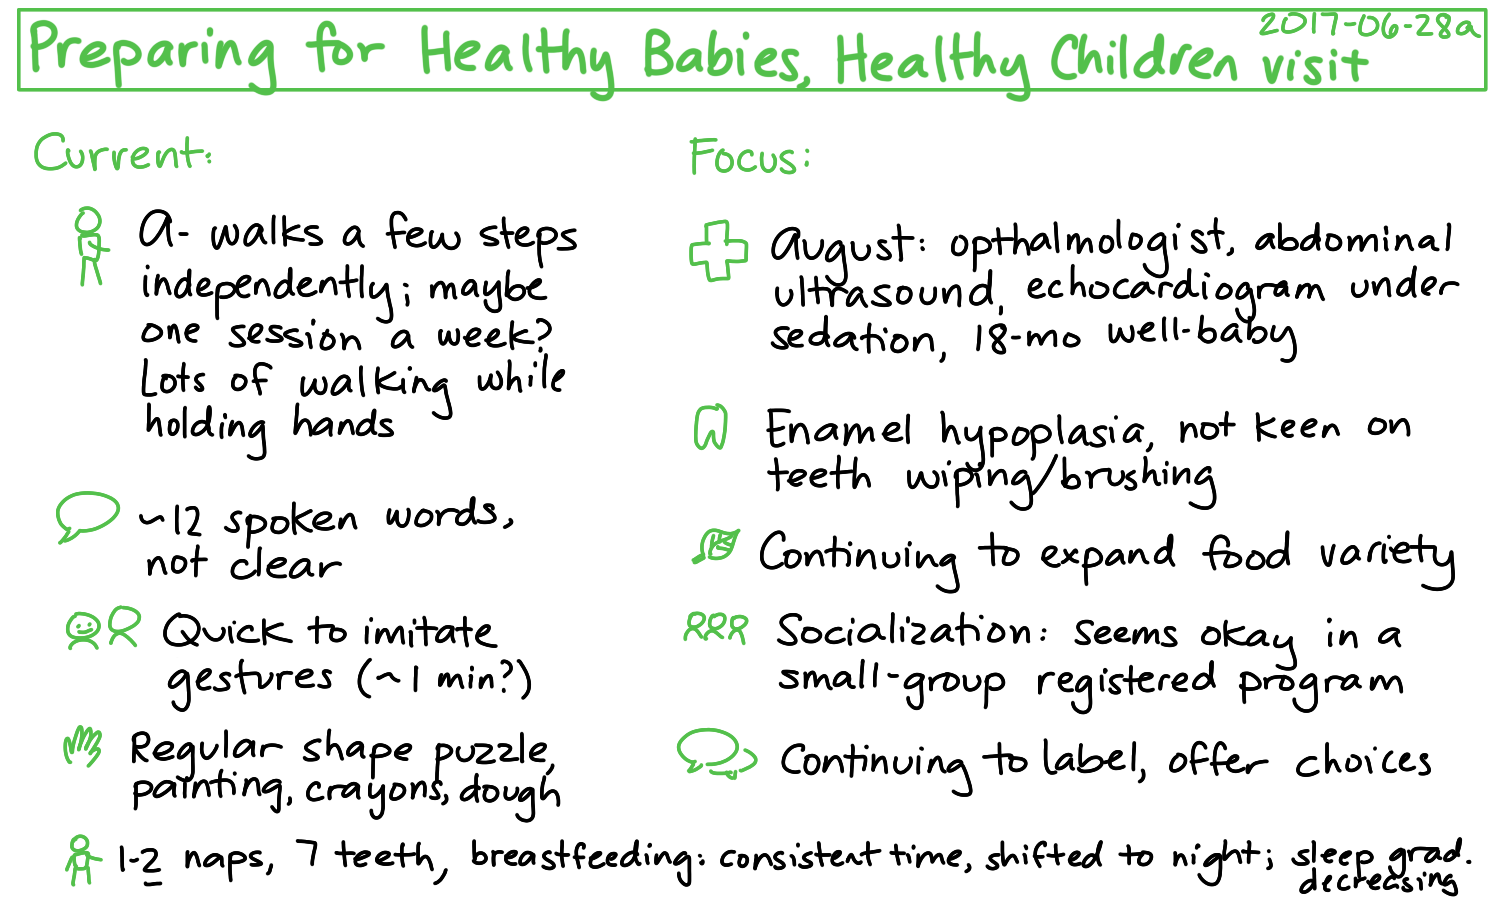 2017-06-28a Preparing for the Healthy Babies Healthy Children visit #hbhc #parenting #snapshot.png